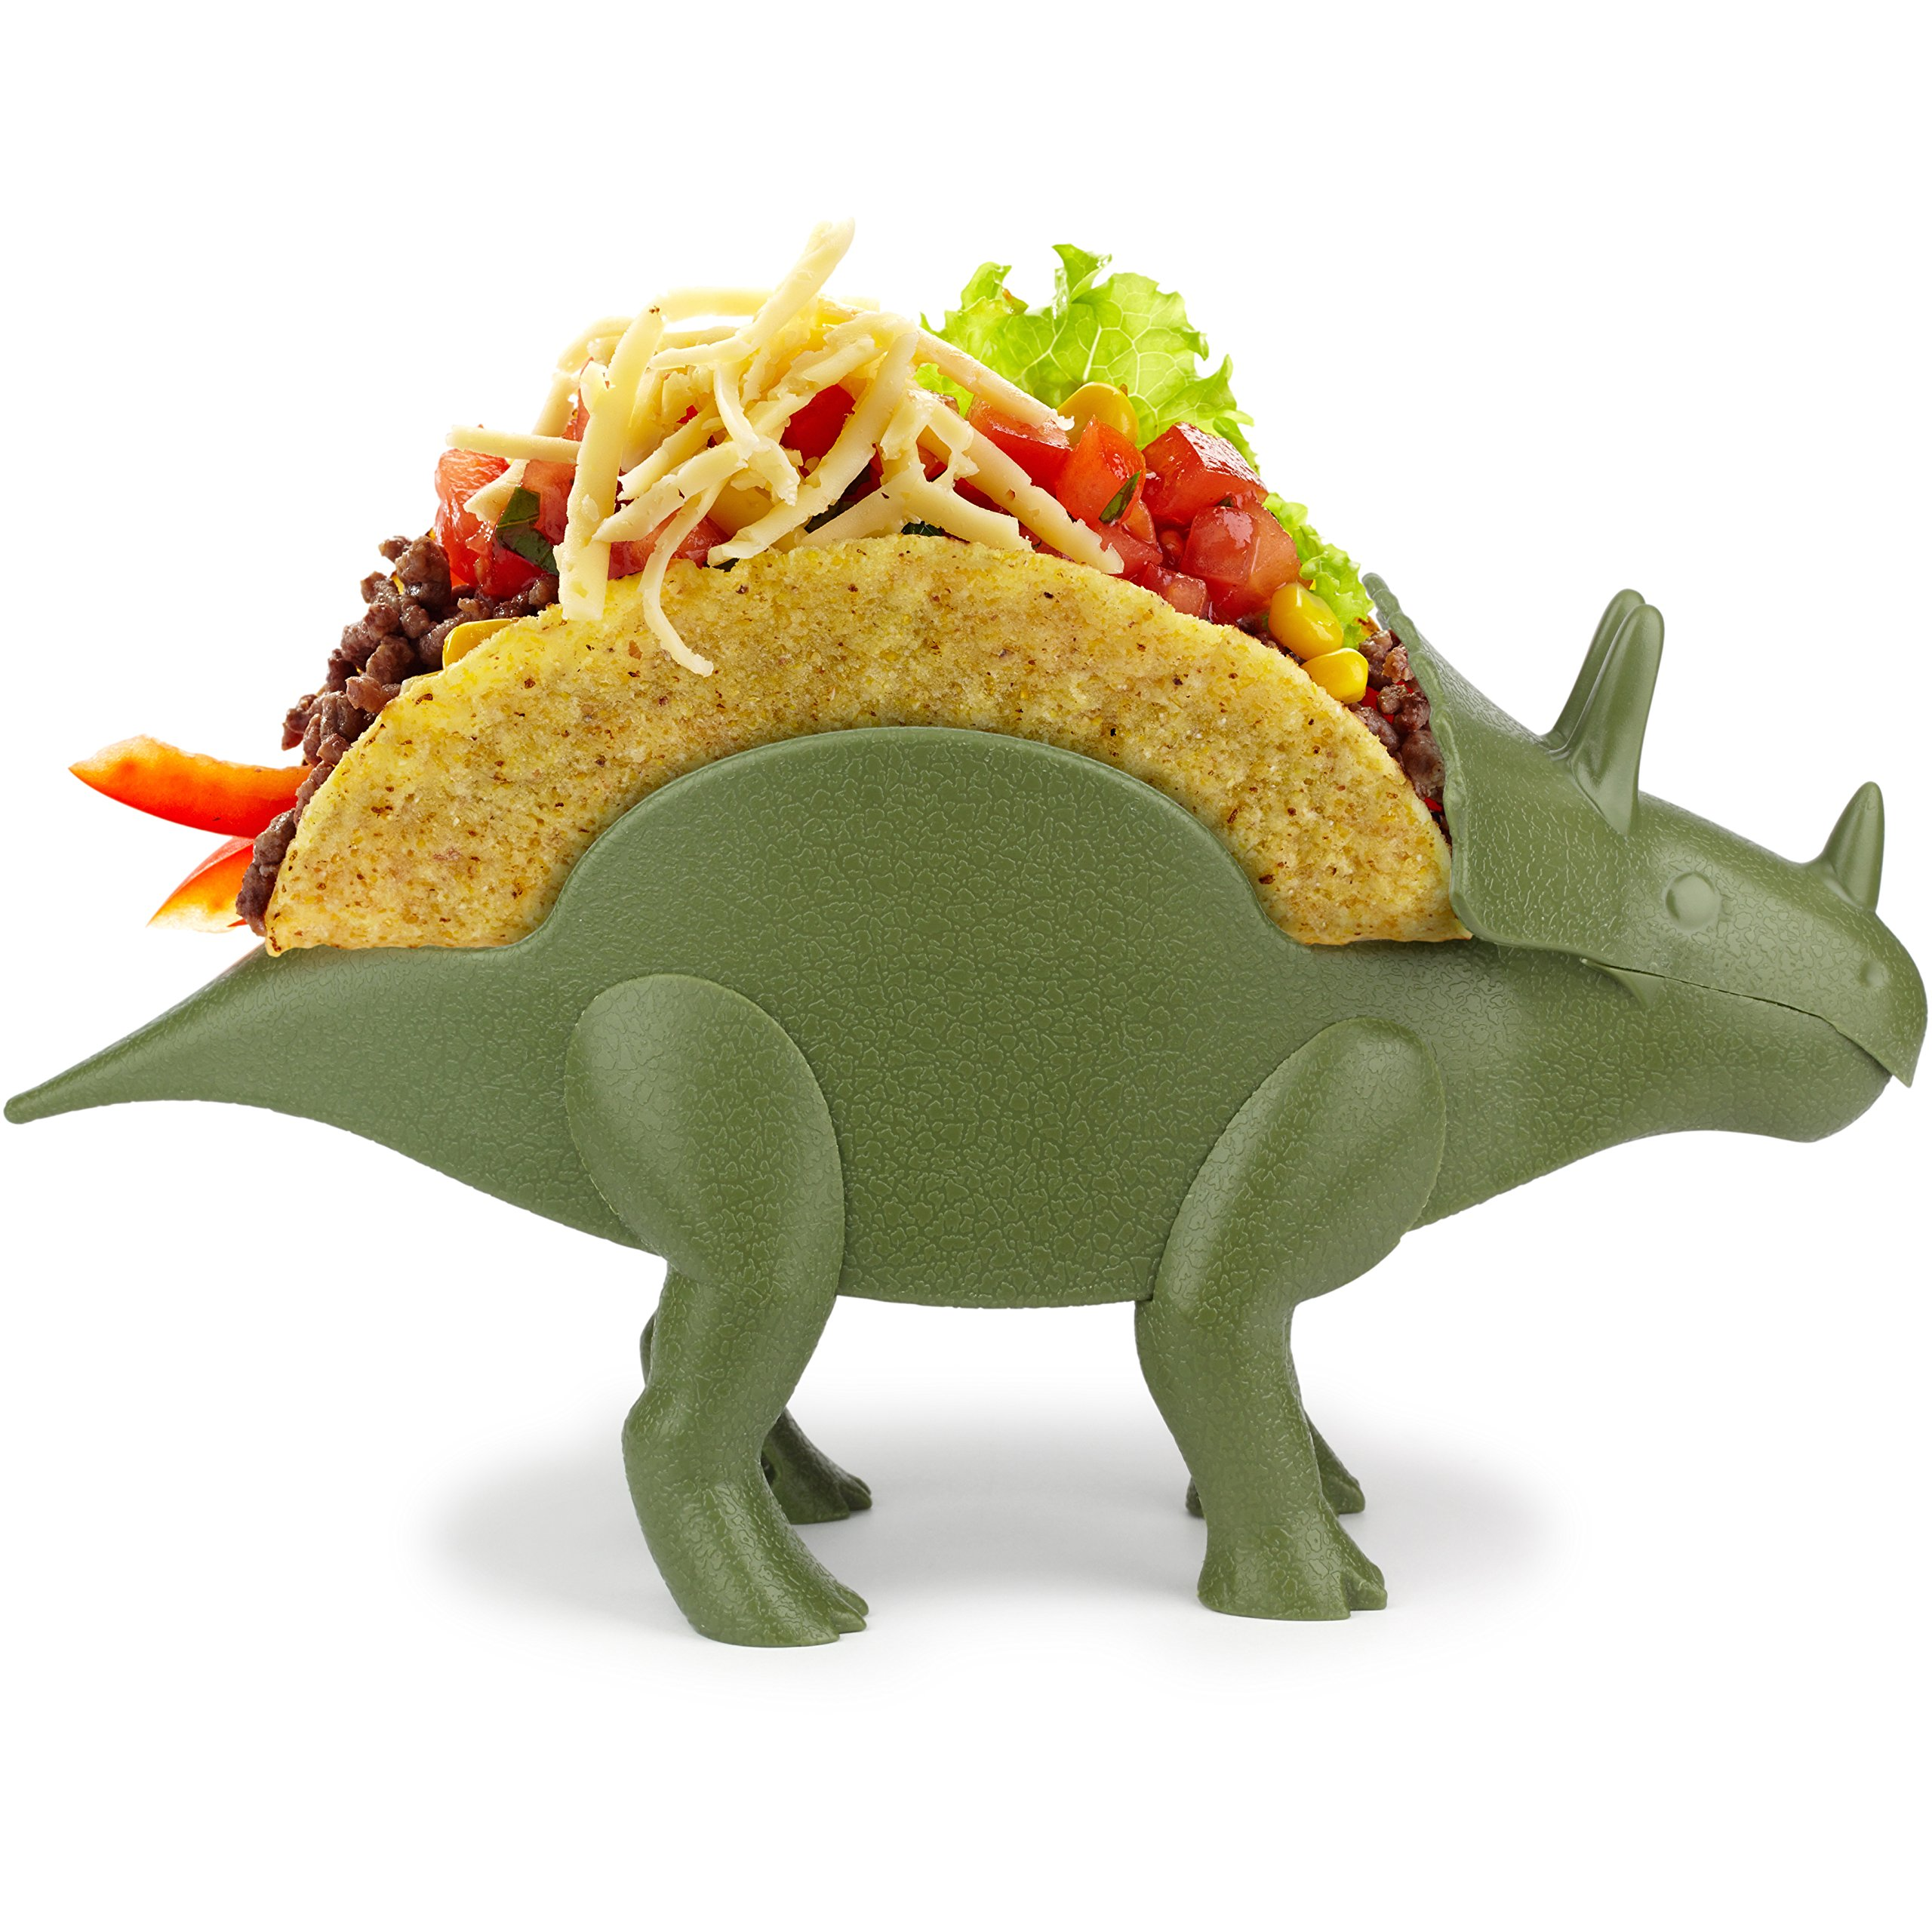 KidsFunwares TriceraTACO Taco Holder - The Ultimate Prehistoric Taco Stand for Jurassic Taco Tuesdays and Dinosaur Parties - Holds 2 Tacos - The Perfect Gift for Kids and Kidults that Love Dinosaurs by KidsFunwares (Image #1)